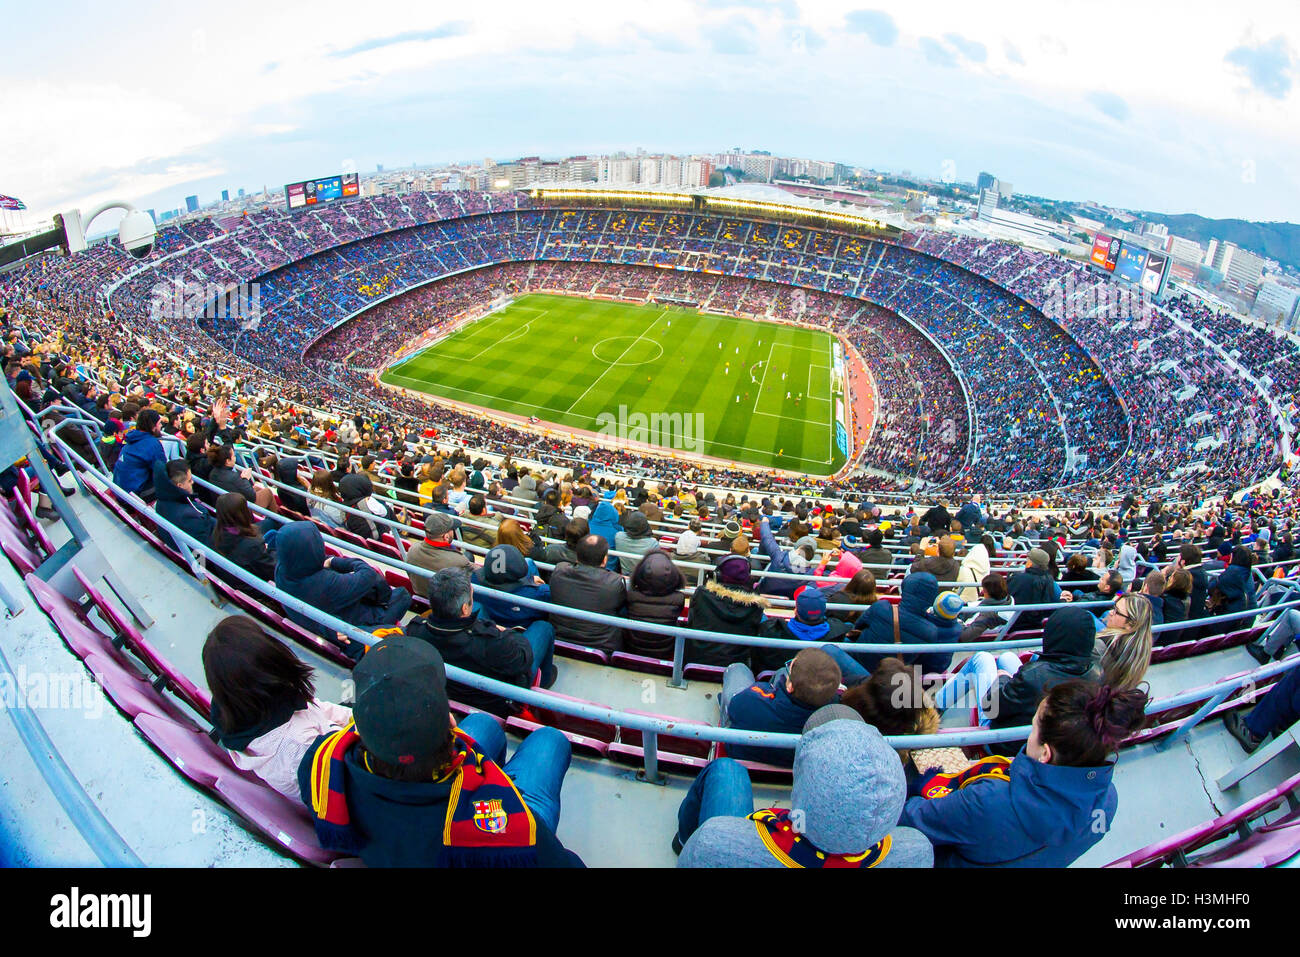 BARCELONA - FEB 21: A general view of the Camp Nou Stadium. Stock Photo